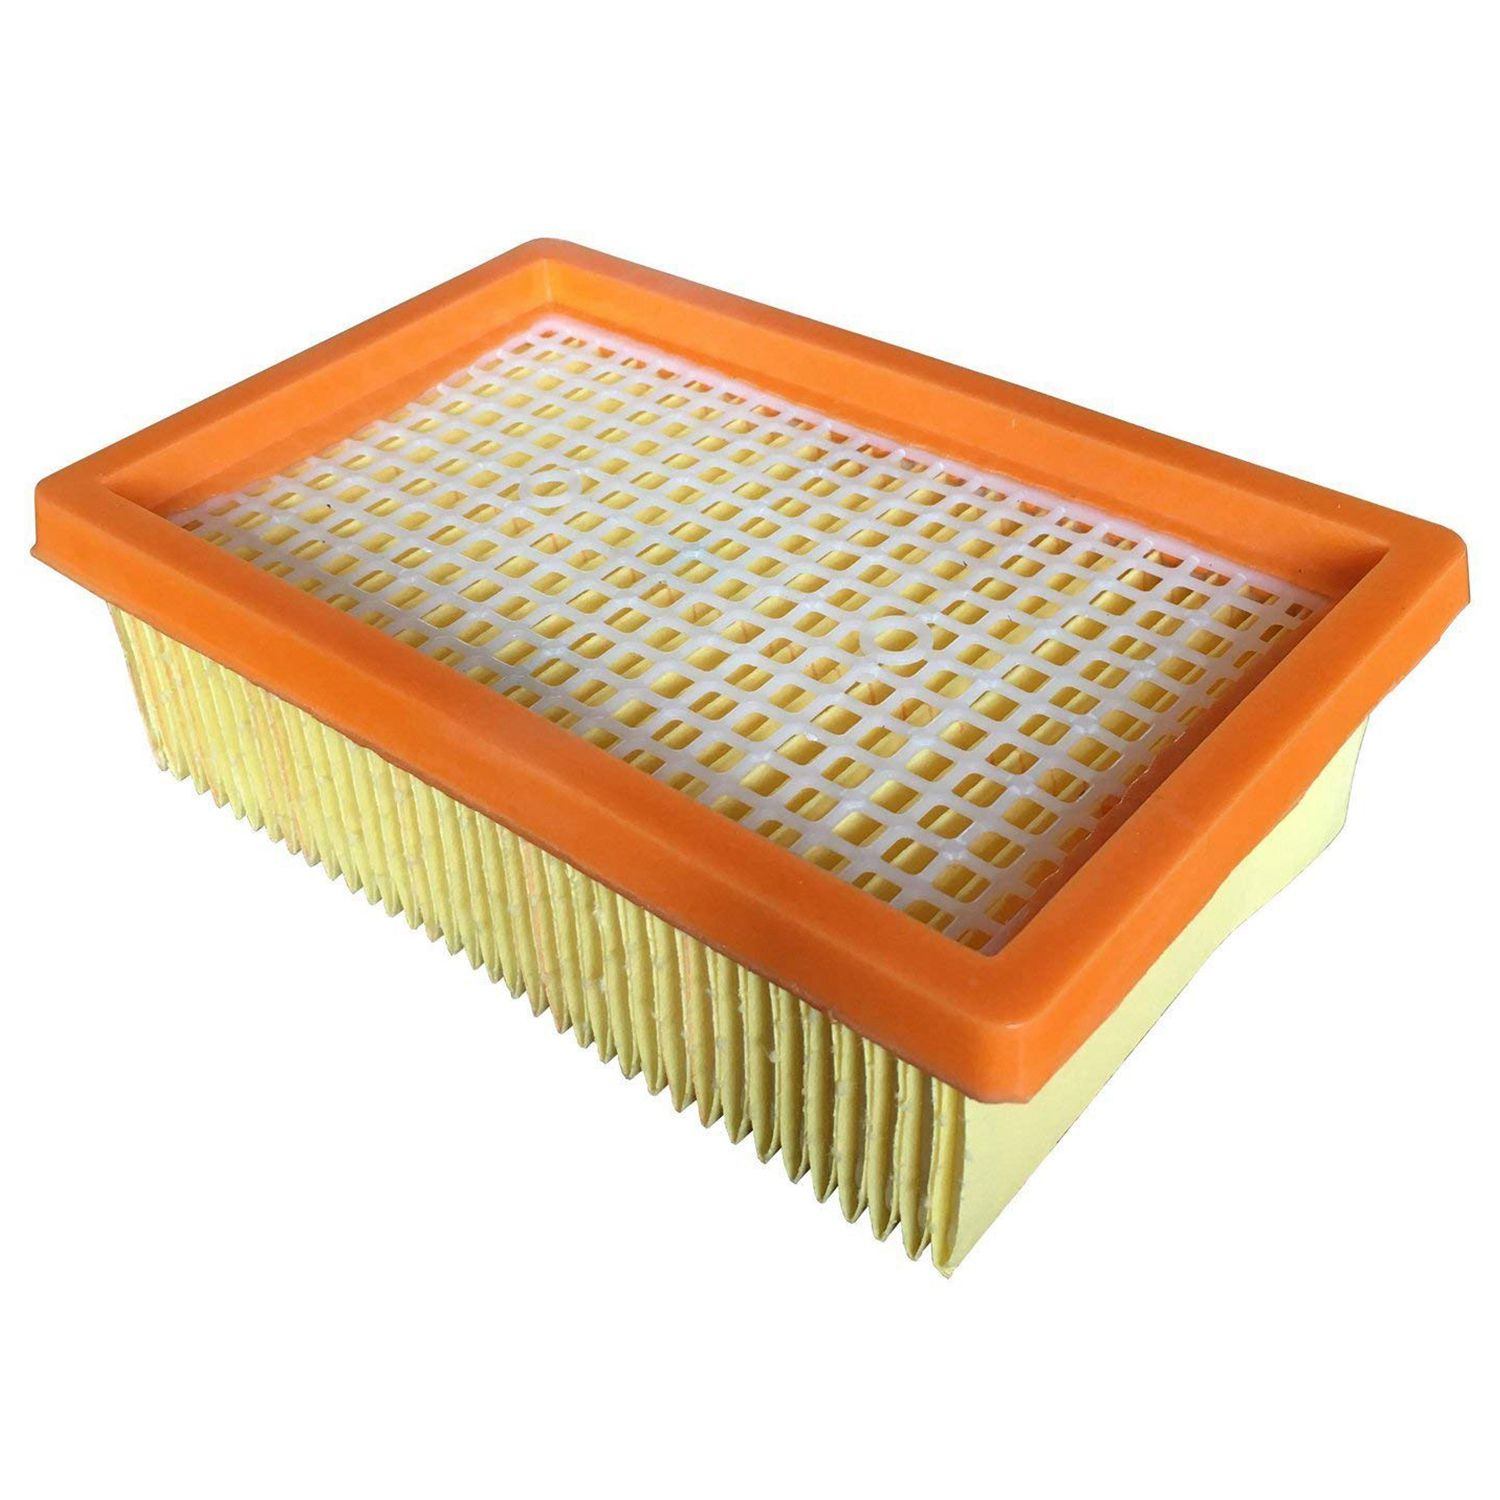 Vacuum Cleaner Filter Replacement For KARCHER Flat-Pleated MV4 MV5 MV6 WD4 WD5 WD6 P PREMIUM WD5 цена